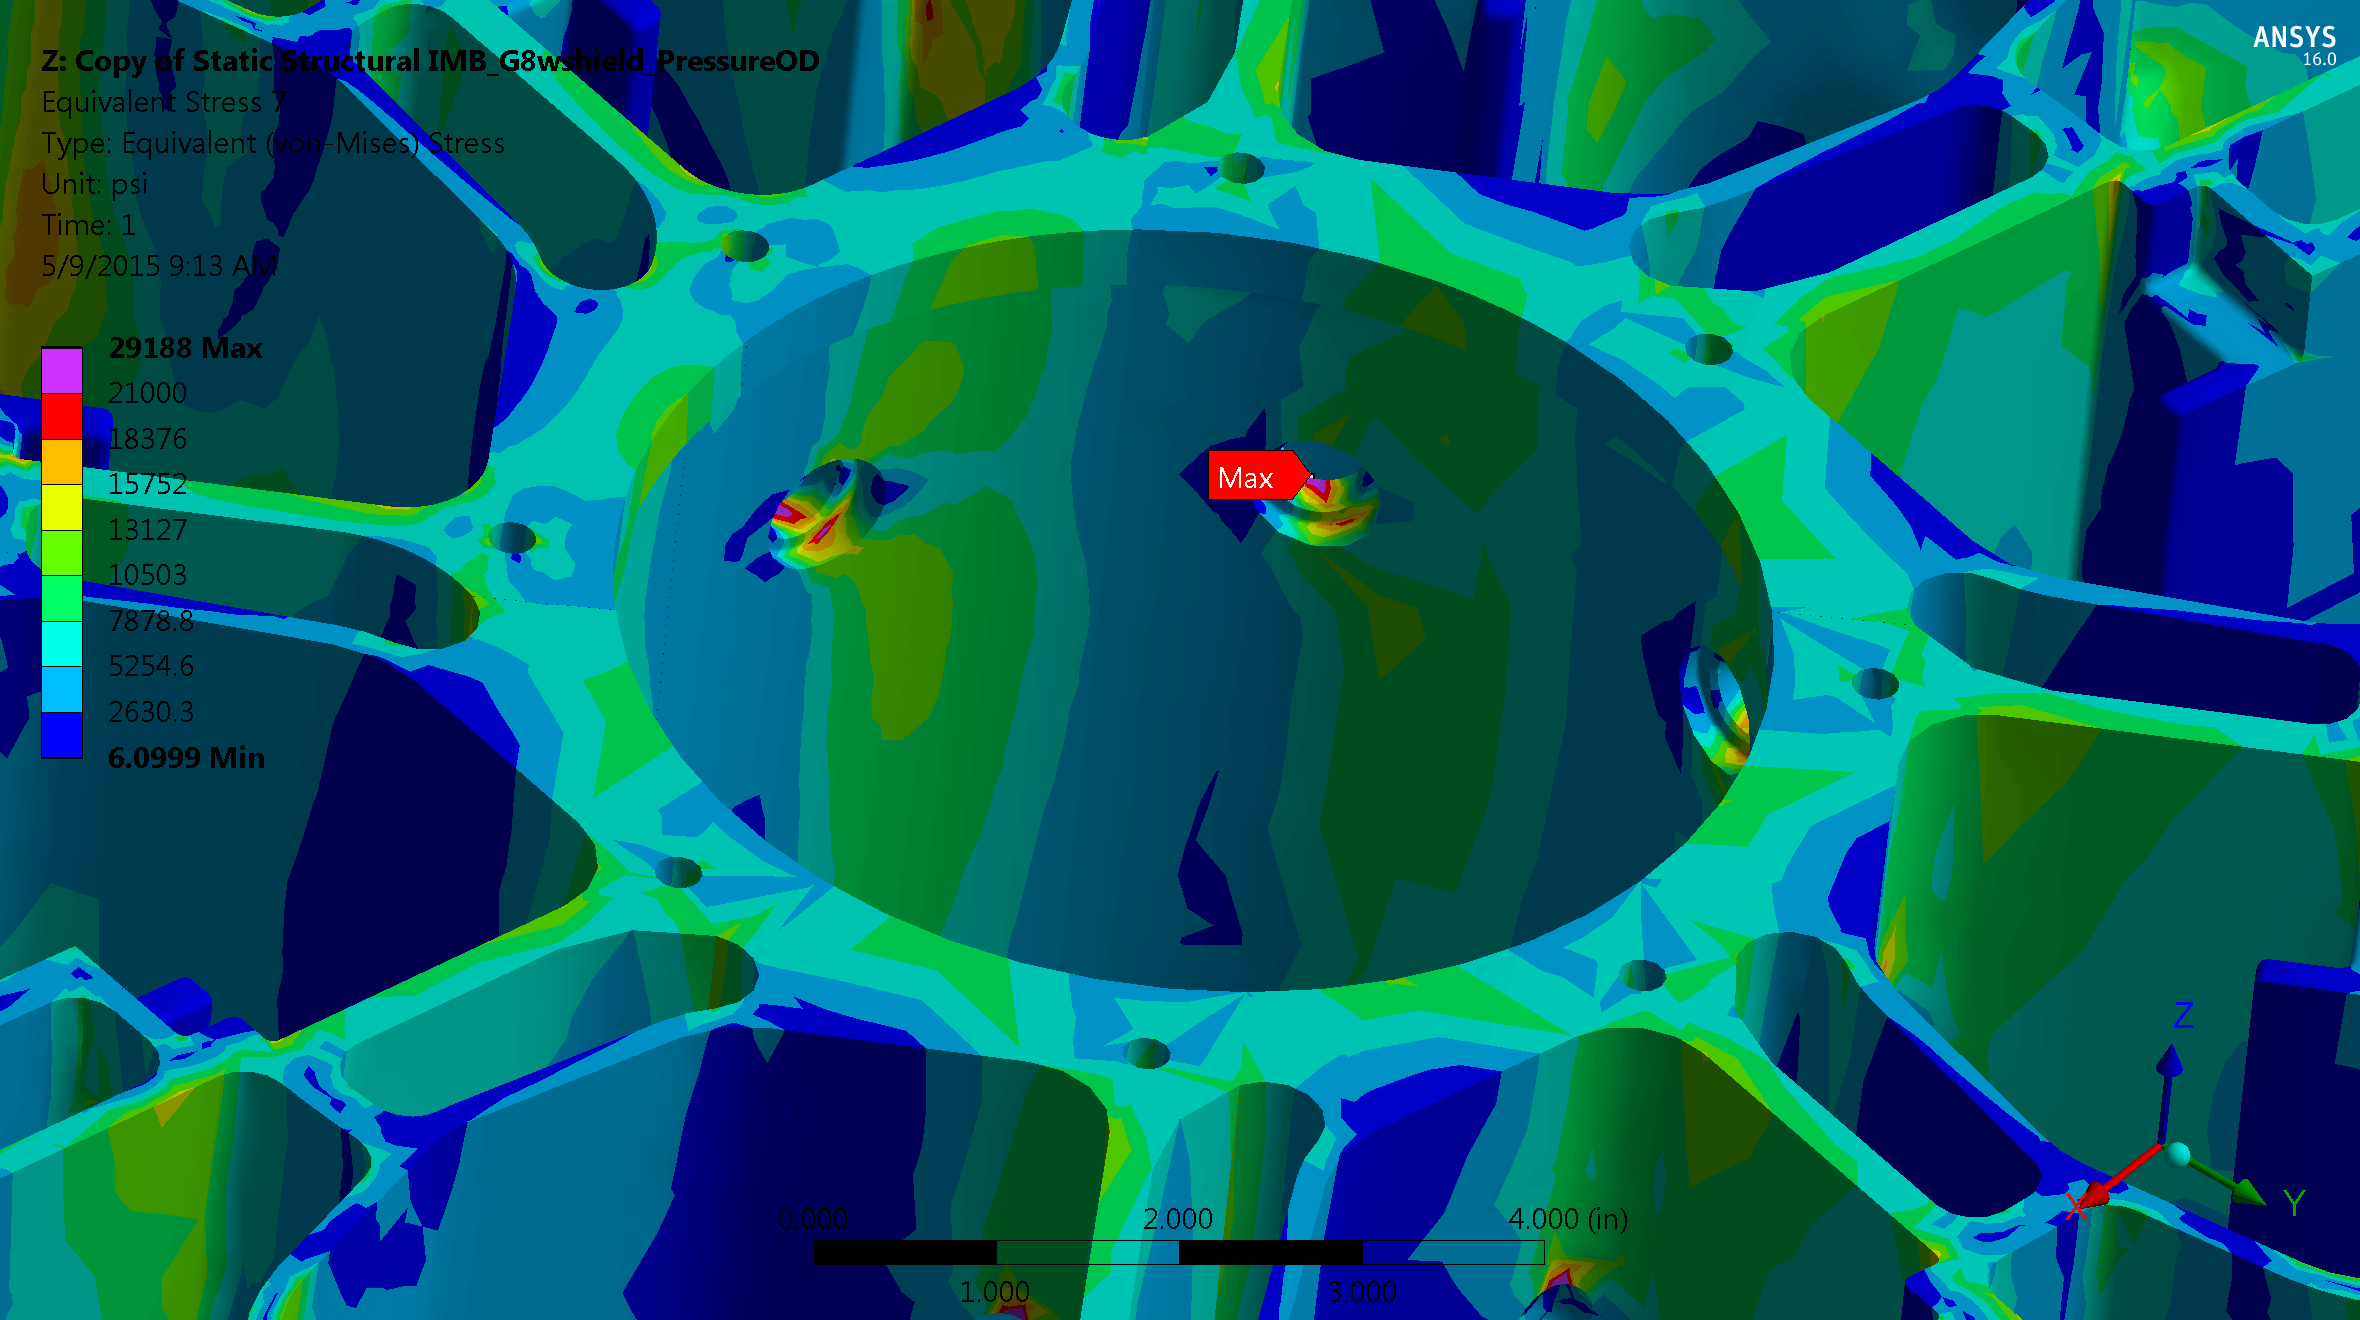 Centrifuge FEA Structural Analysis